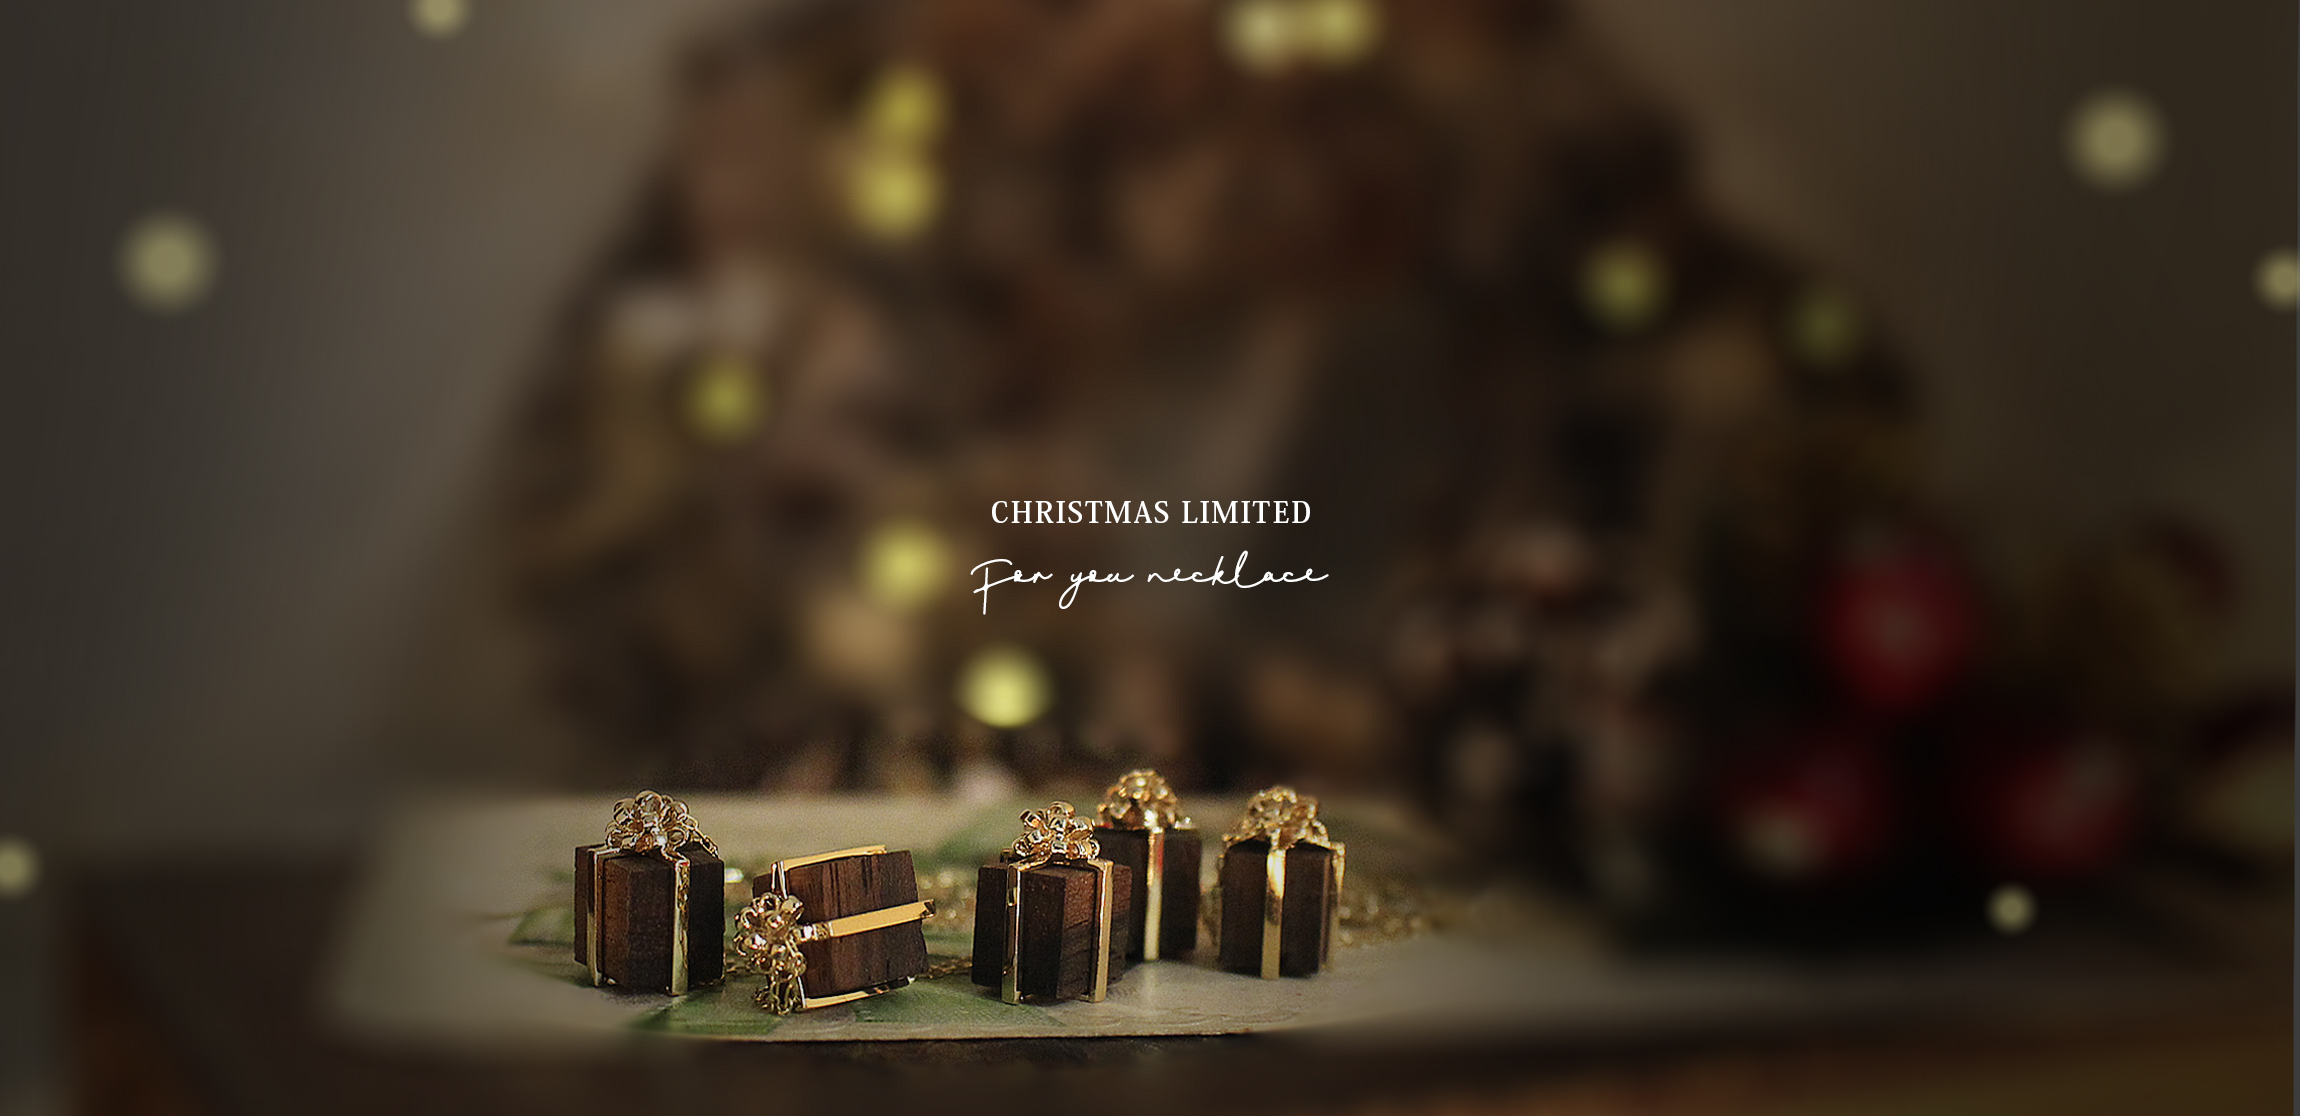 Christmas Limited